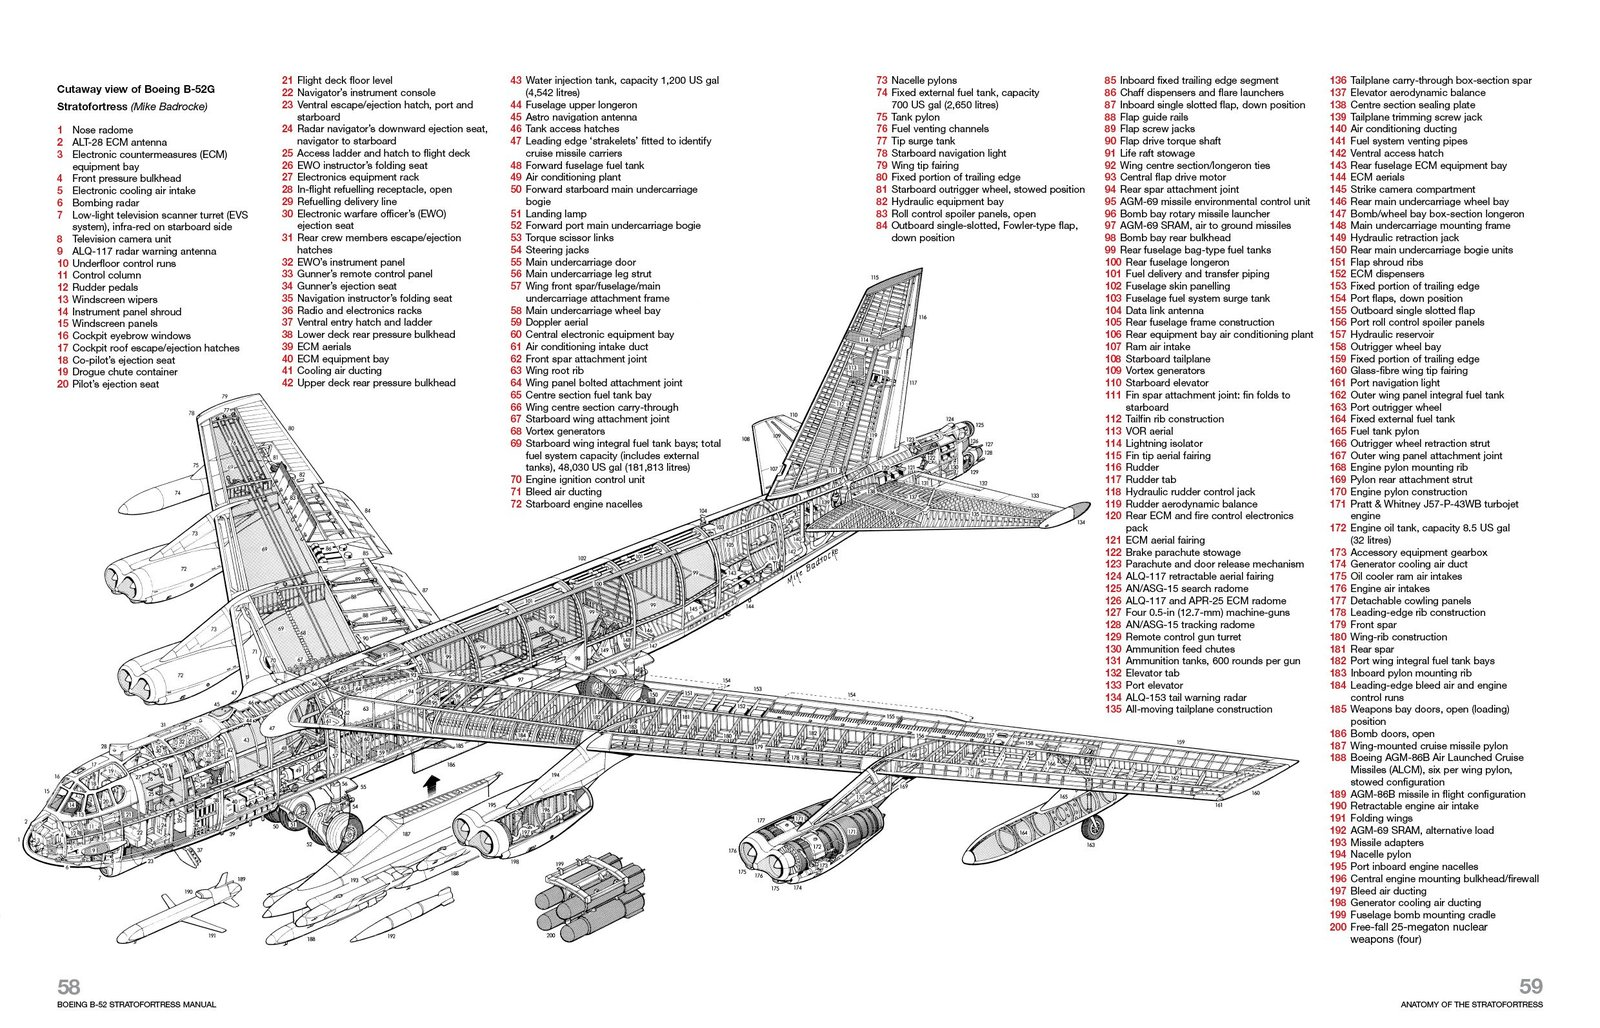 Haynes Boeing B-52 Stratofortress Owners Workshop Manual